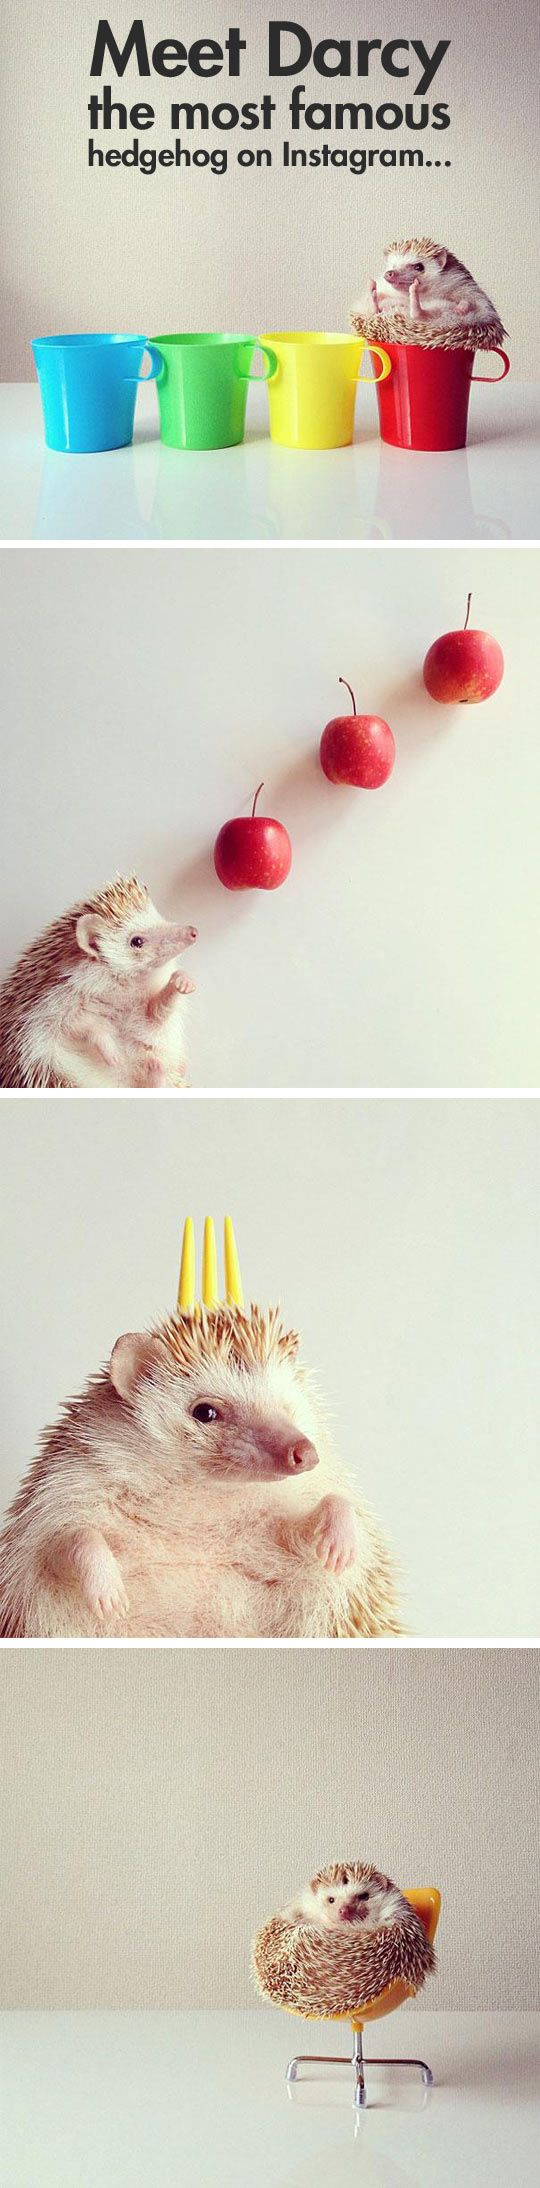 Darcy, the most famous hedgehog on the Internet…